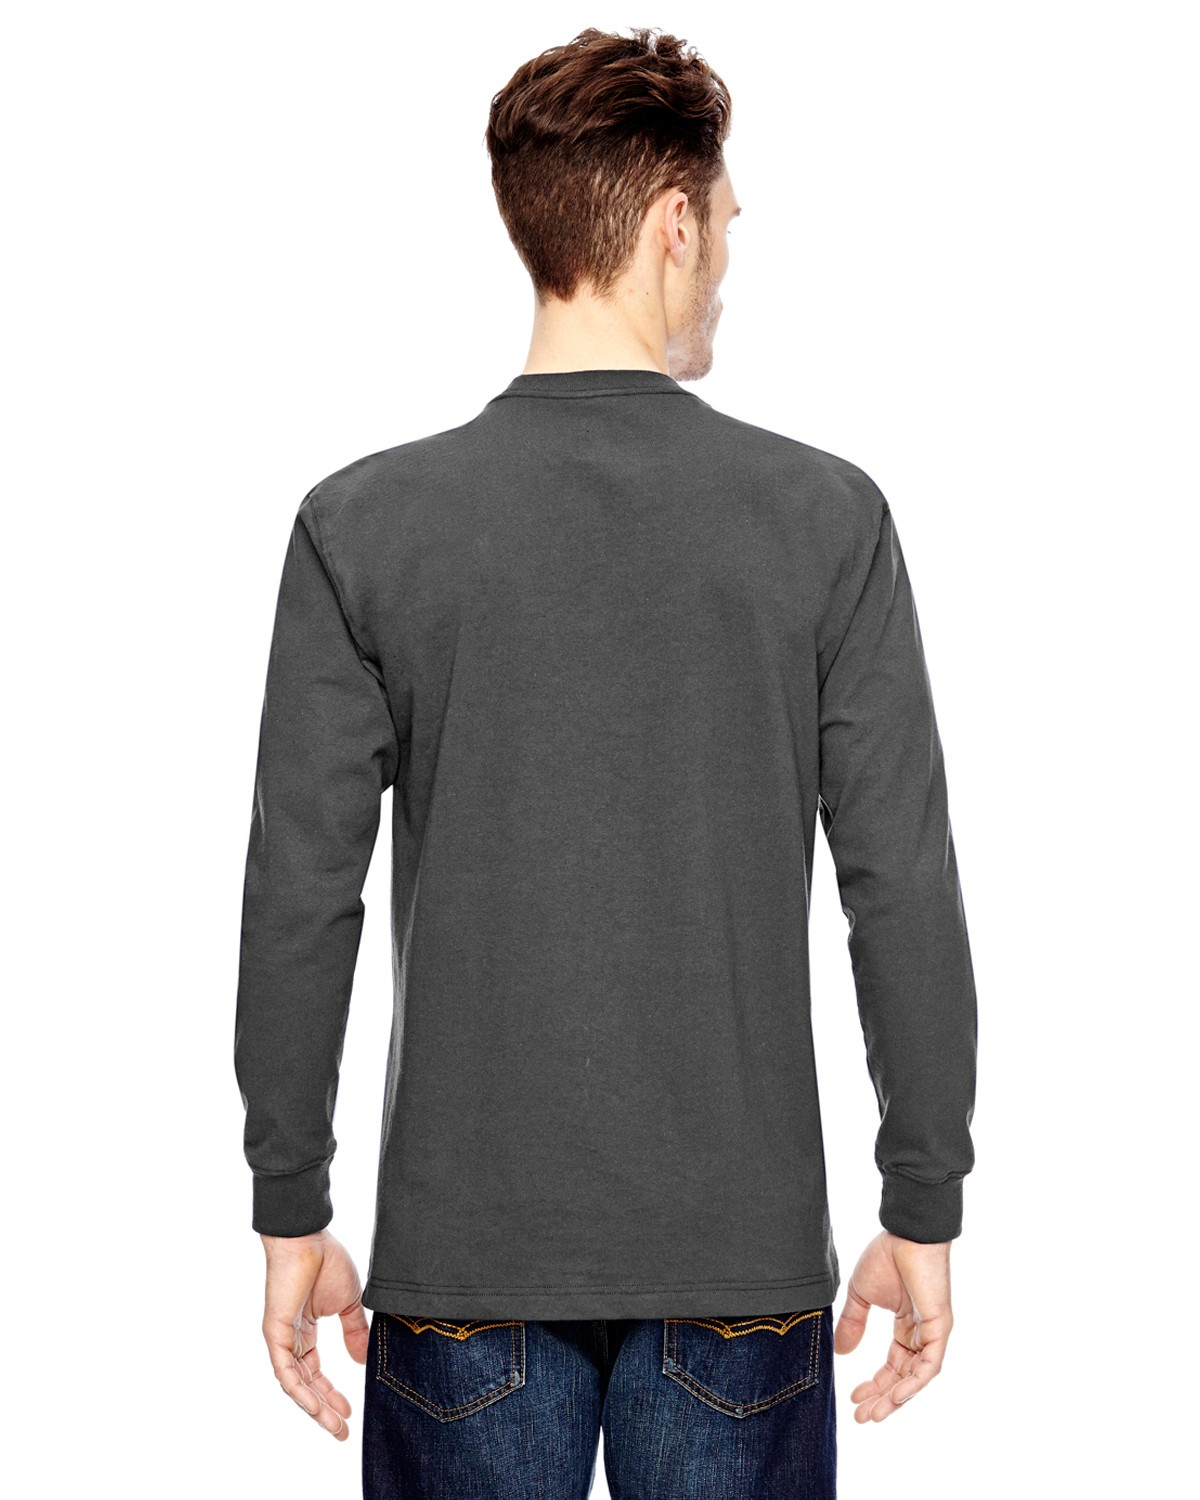 WL450 Dickies CHARCOAL